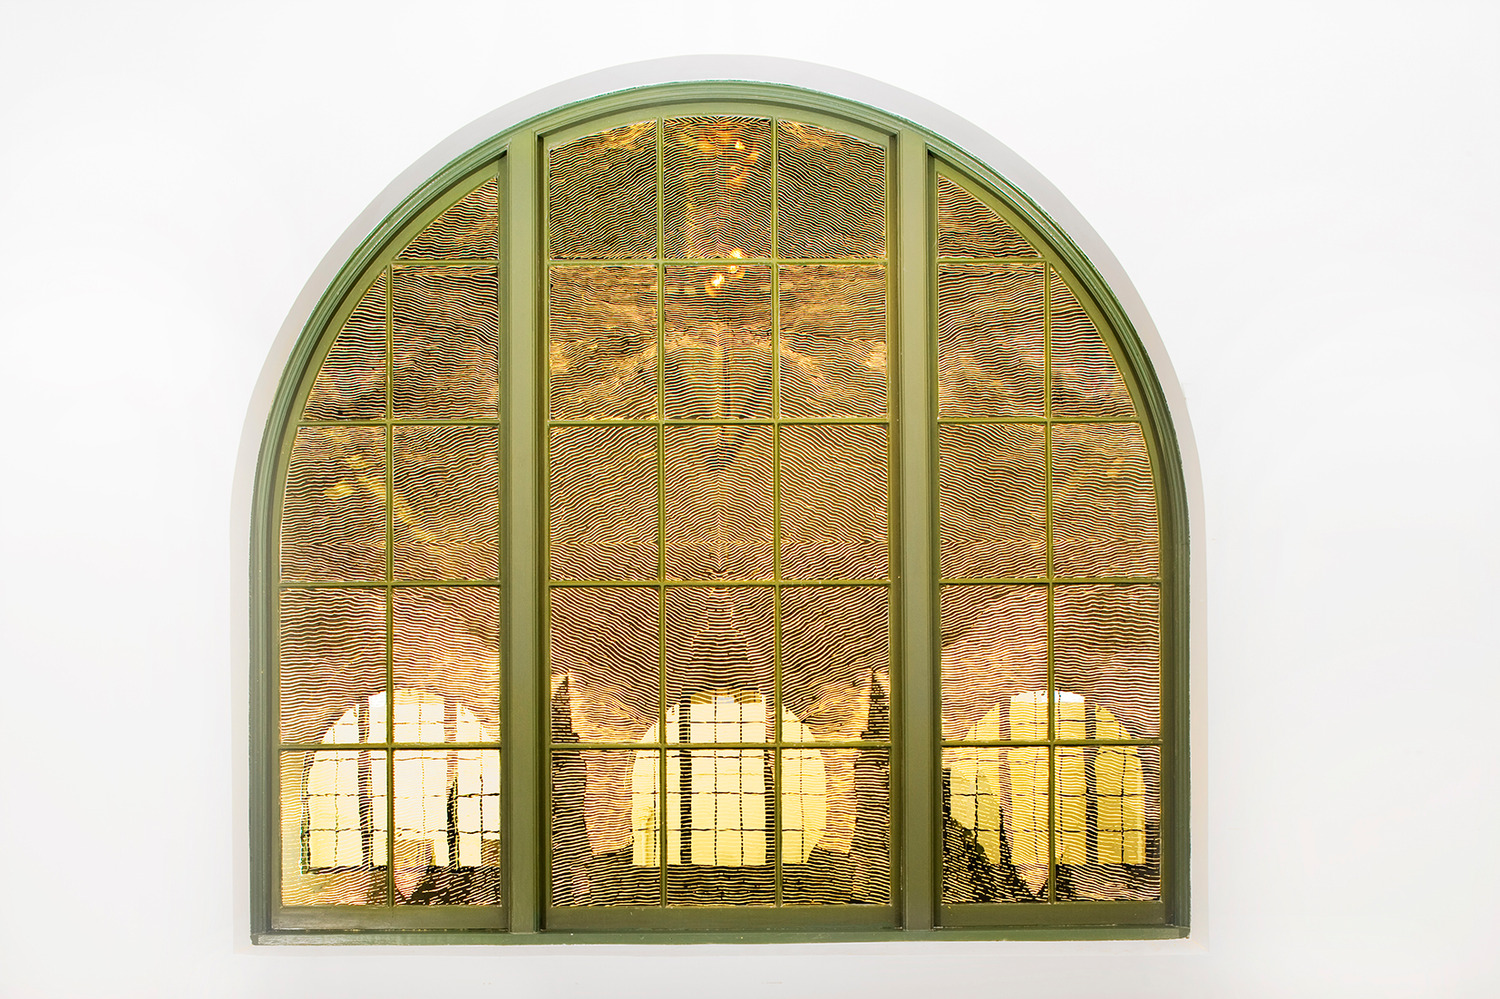 Richard Wright, No Title, 2006, Gold leaf on glass, Dimensions Variable, Installation view, MCASD Downtown, San Diego, 2007